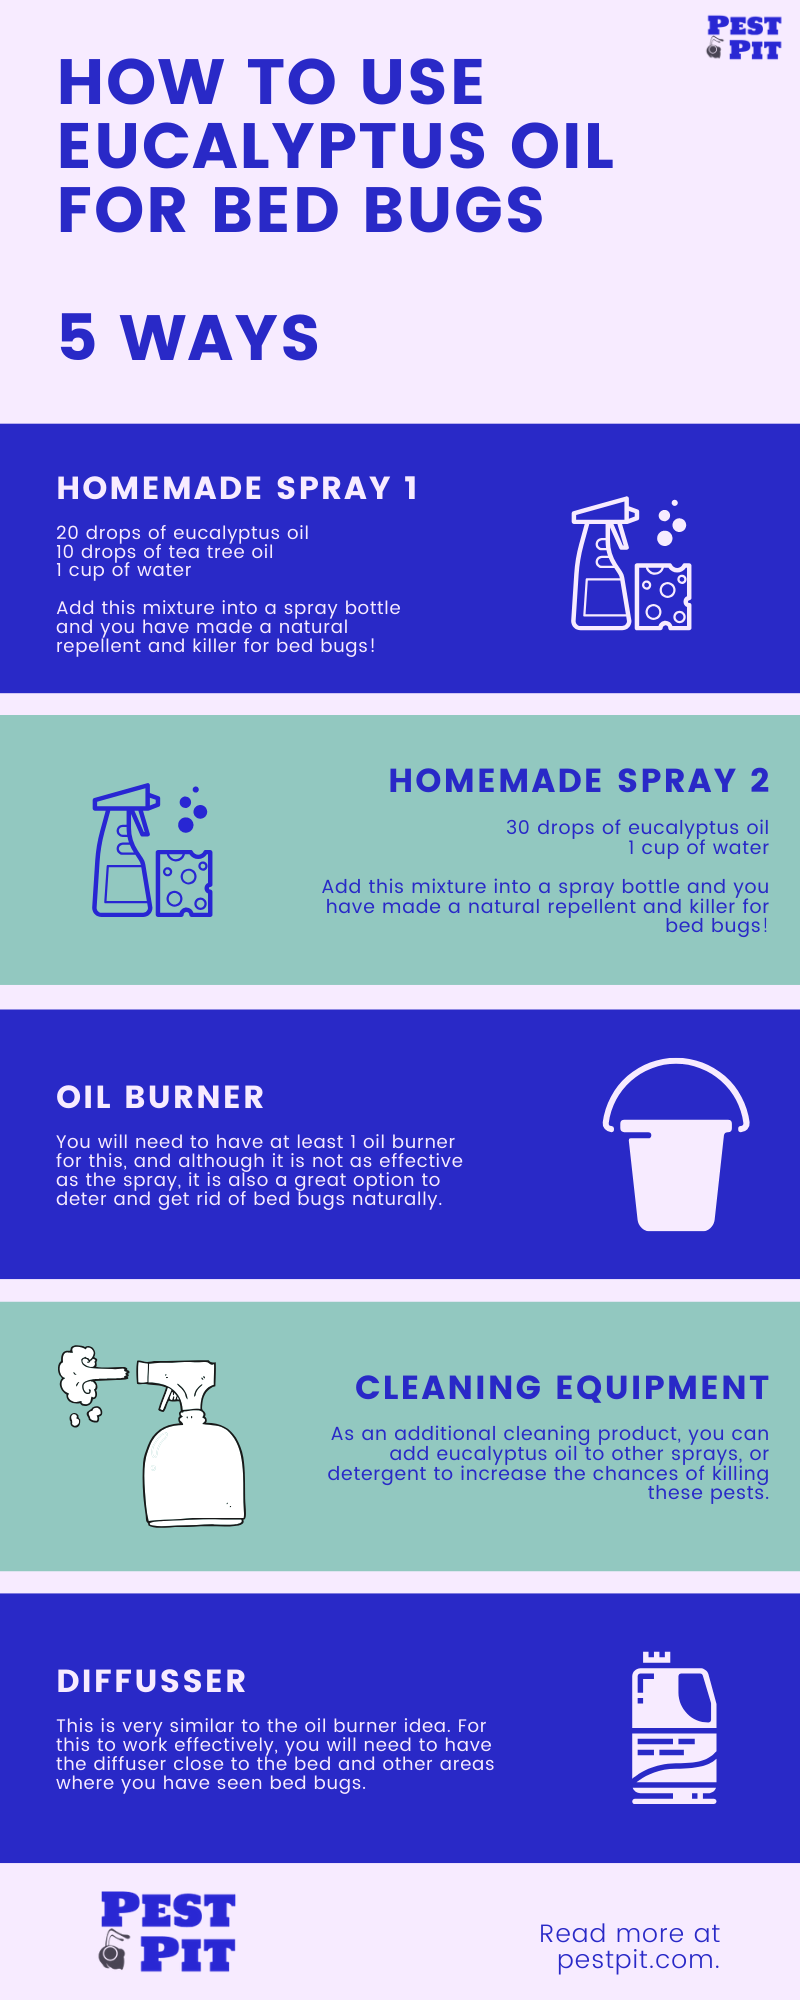 How To Use Eucalyptus Oil For Bed Bugs Infographic